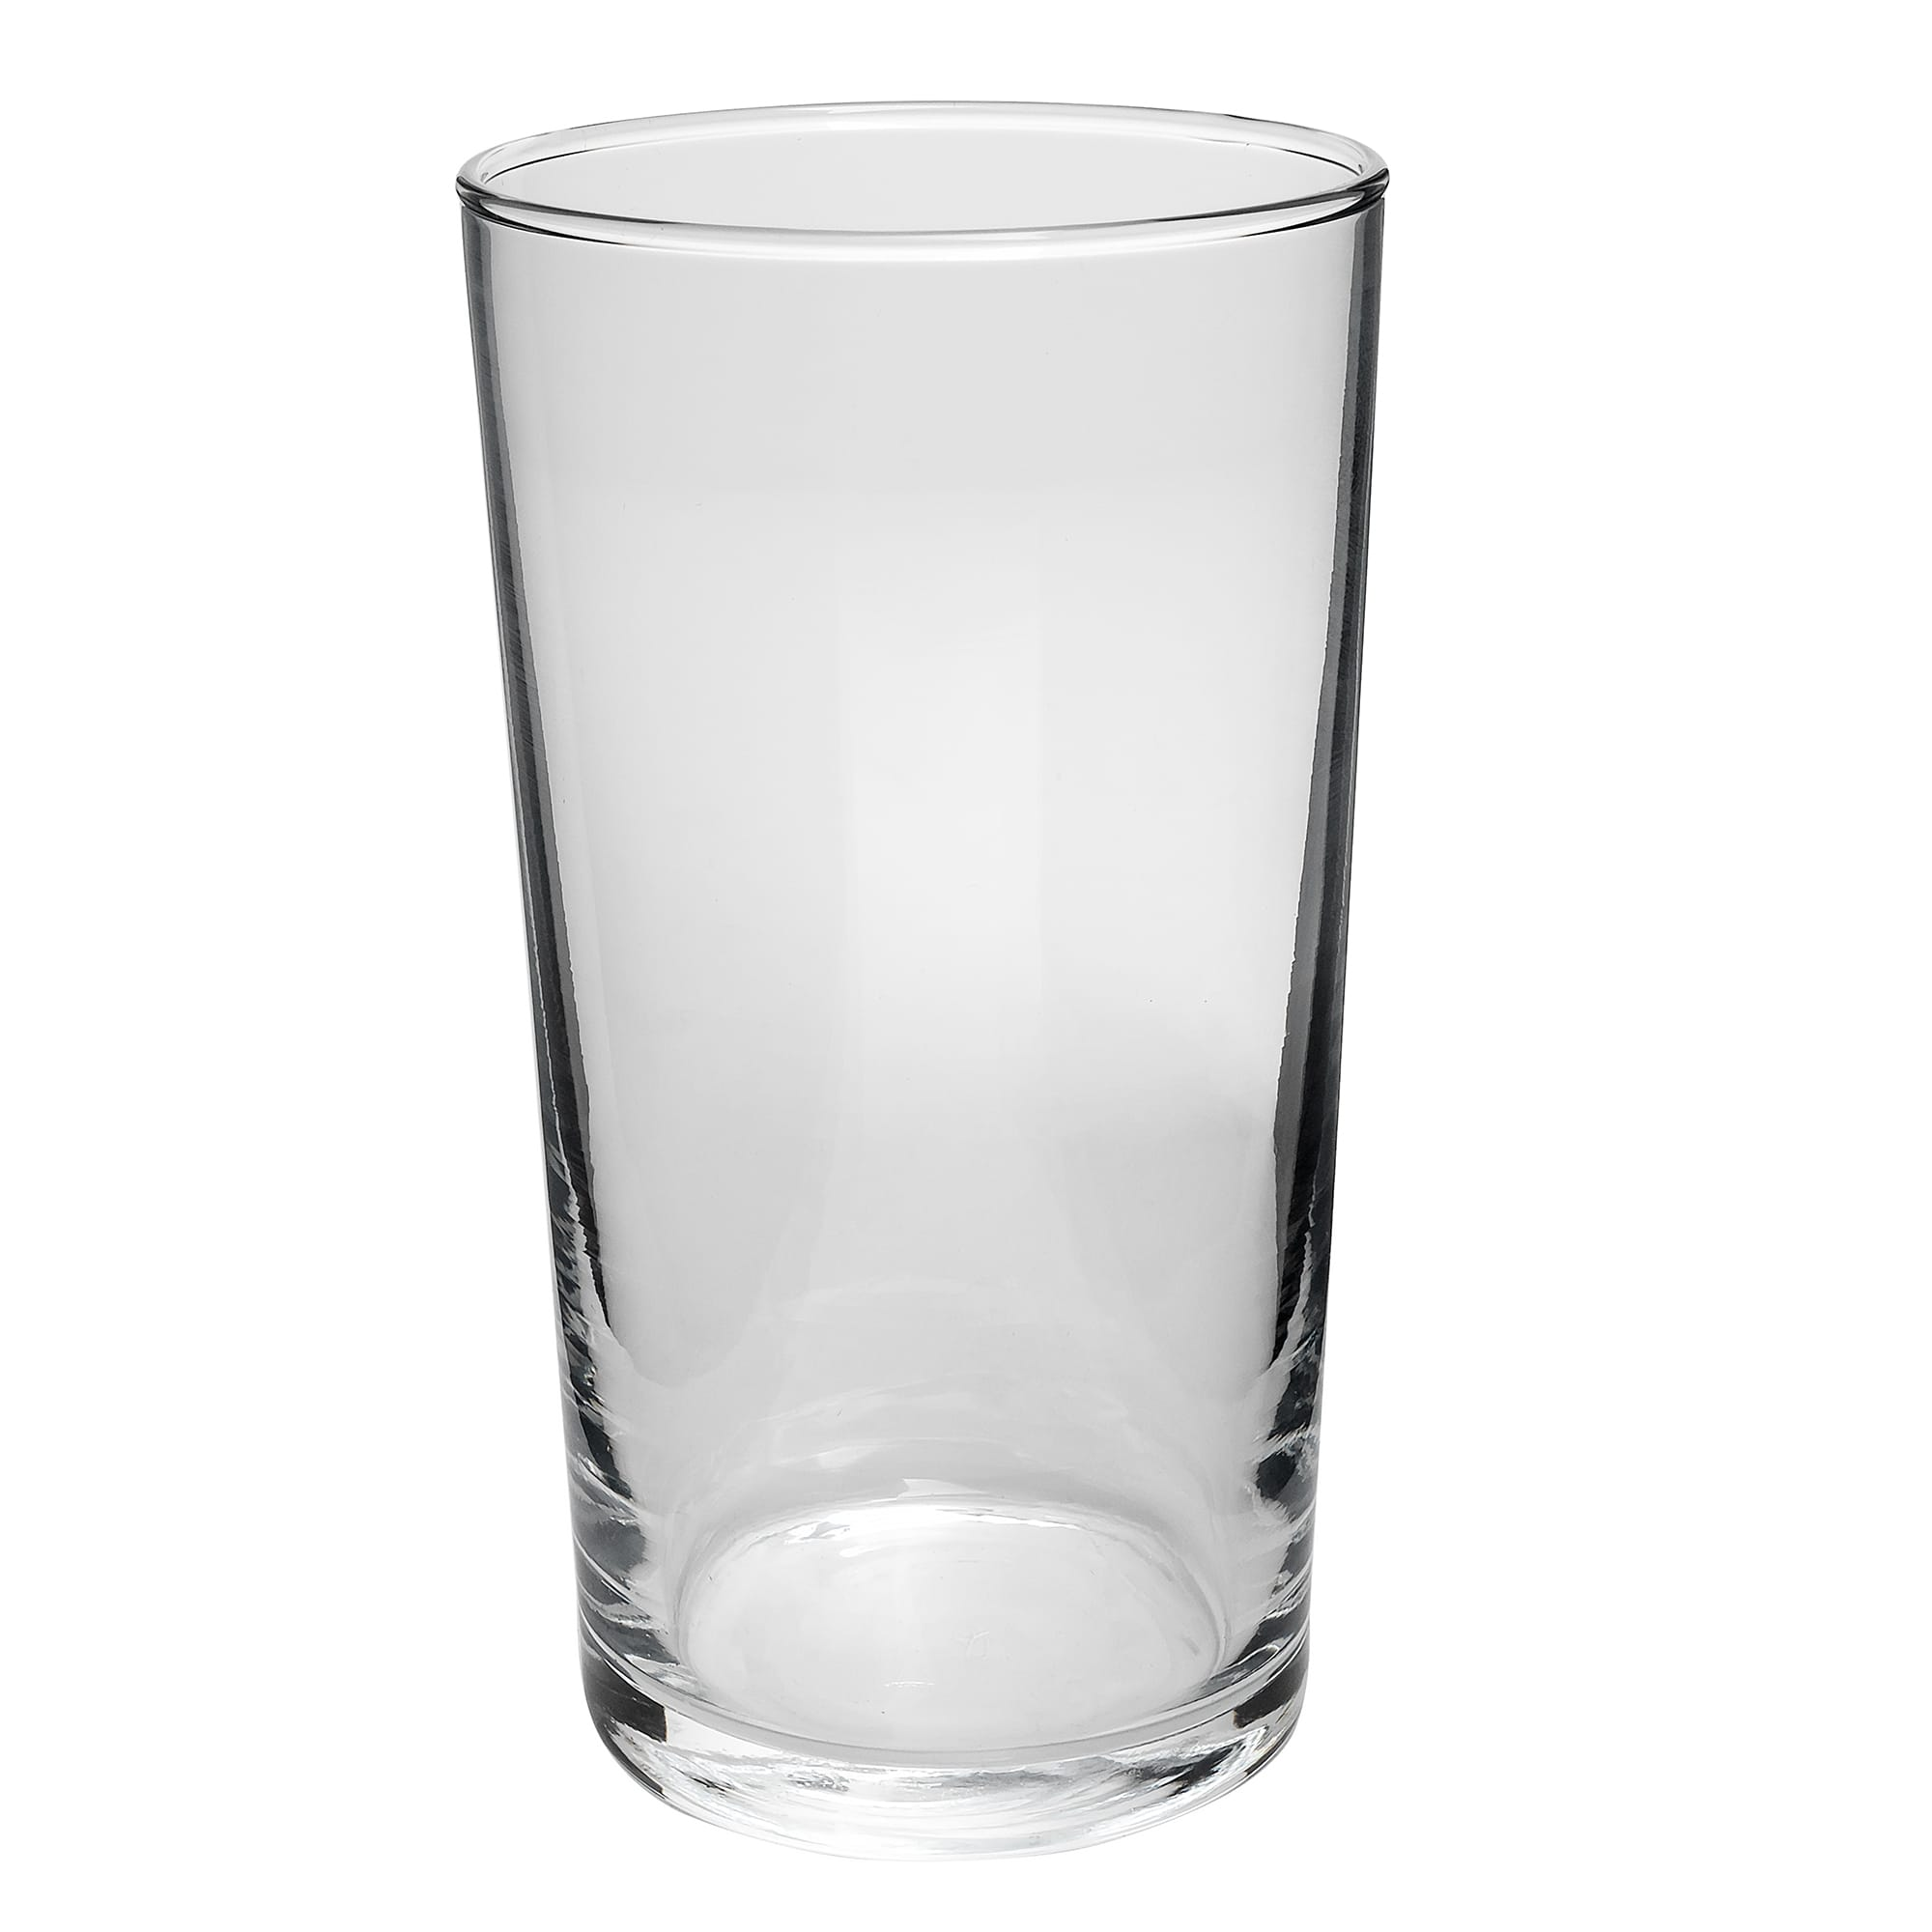 Libbey 53 10-oz Straight Sided Collins Glass - Safedge Rim Guarantee